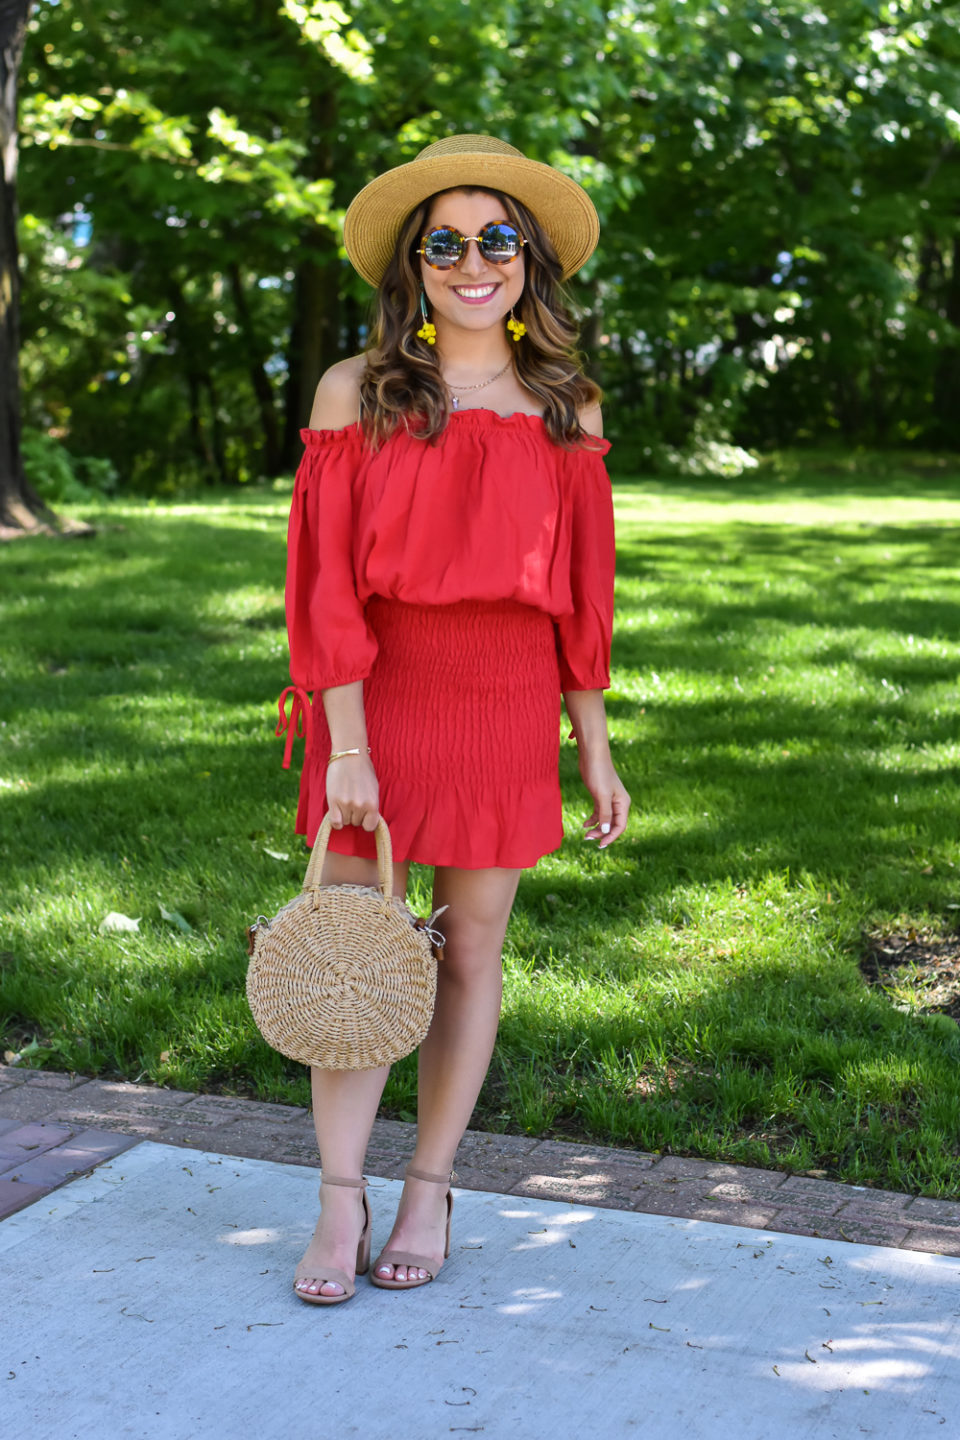 Affordable Outfits for the Fourth of July